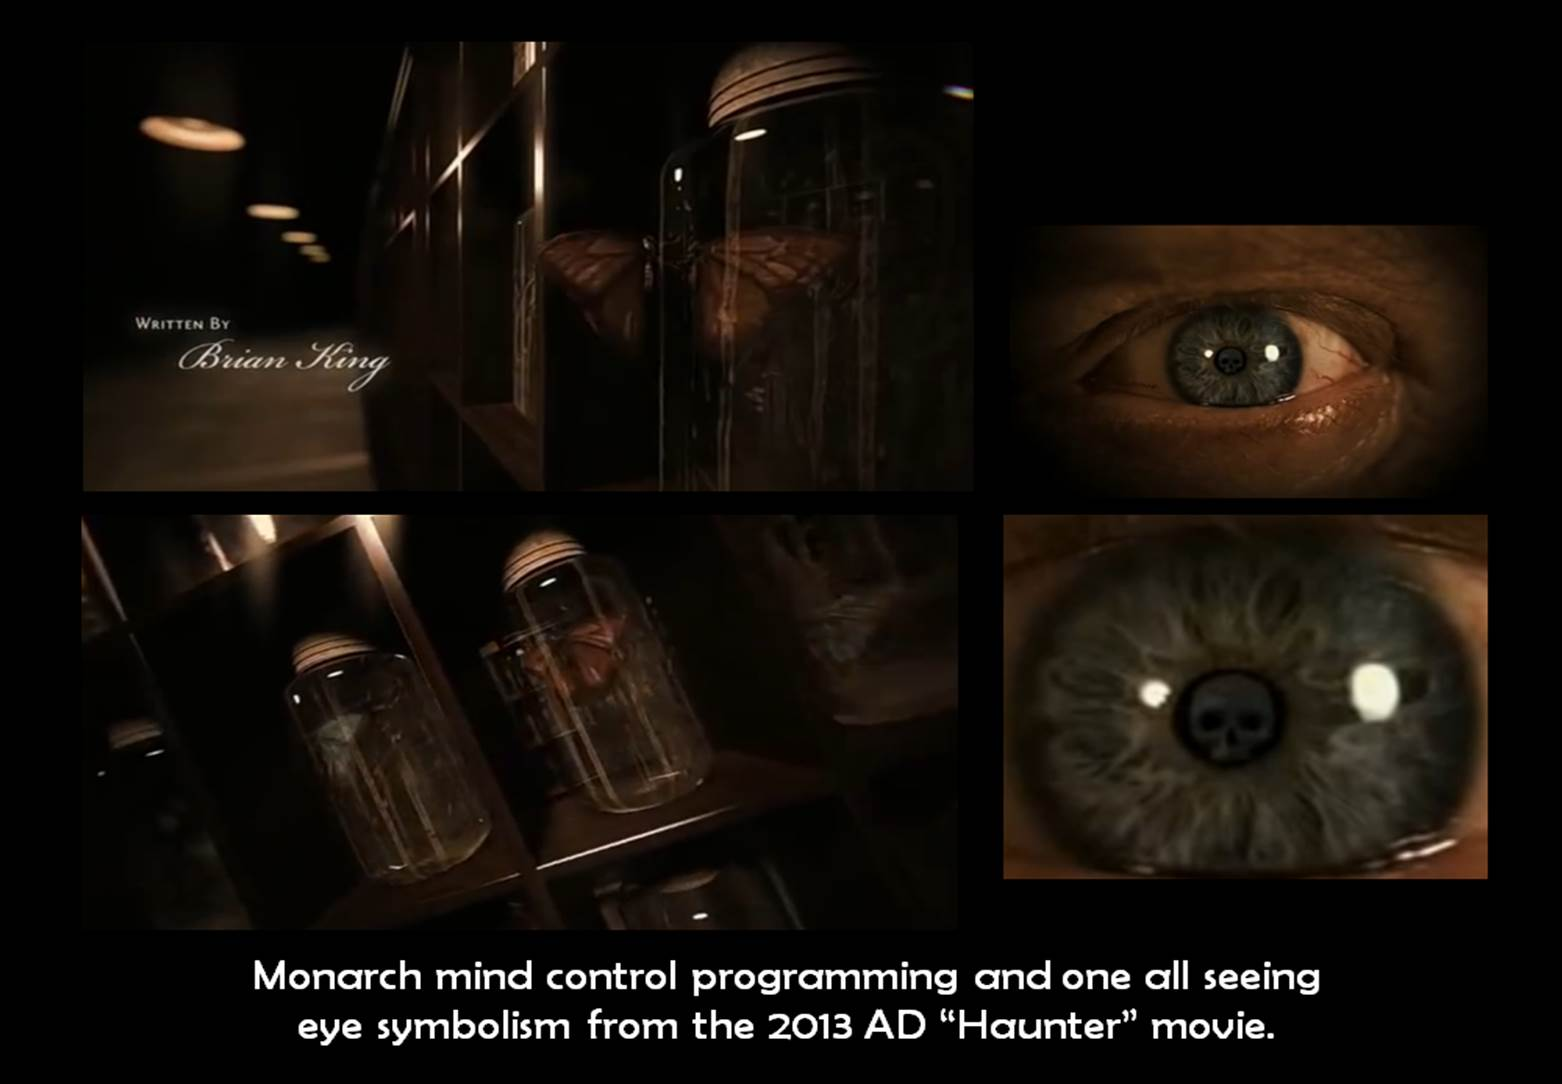 One All Seeing Eye Symbolism In Movie Posters Book Covers True